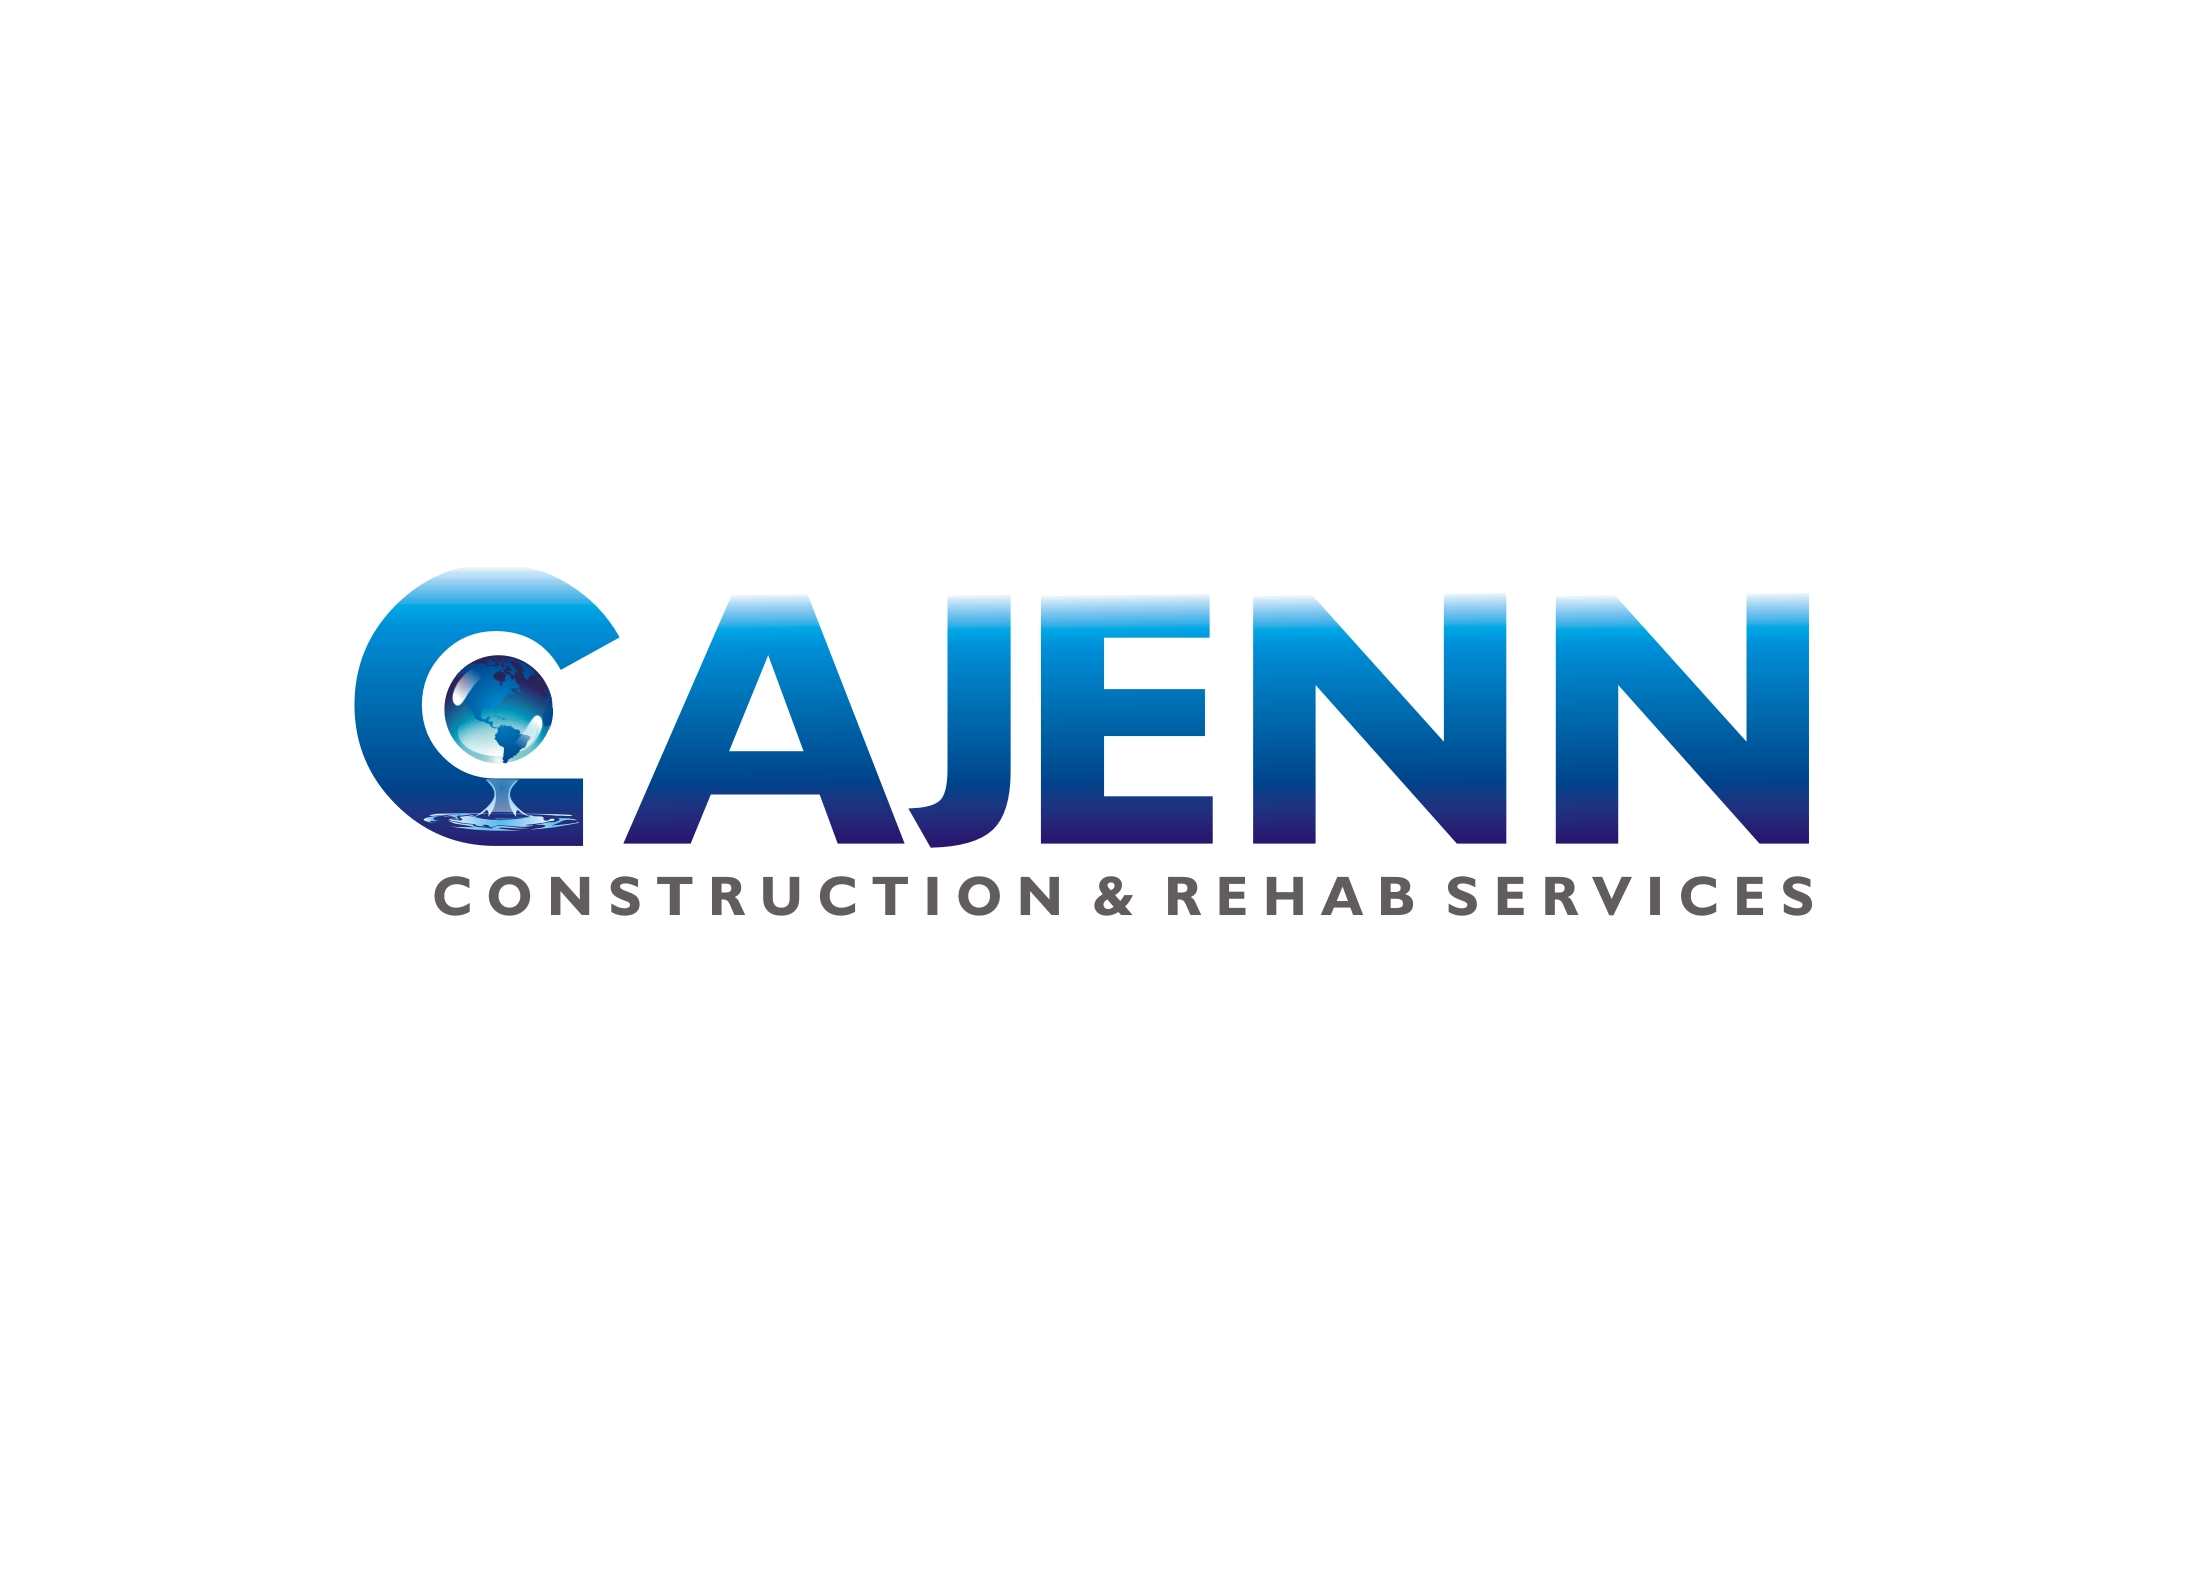 Logo Design by Zdravko Krulj - Entry No. 122 in the Logo Design Contest New Logo Design for CaJenn Construction & Rehab Services.